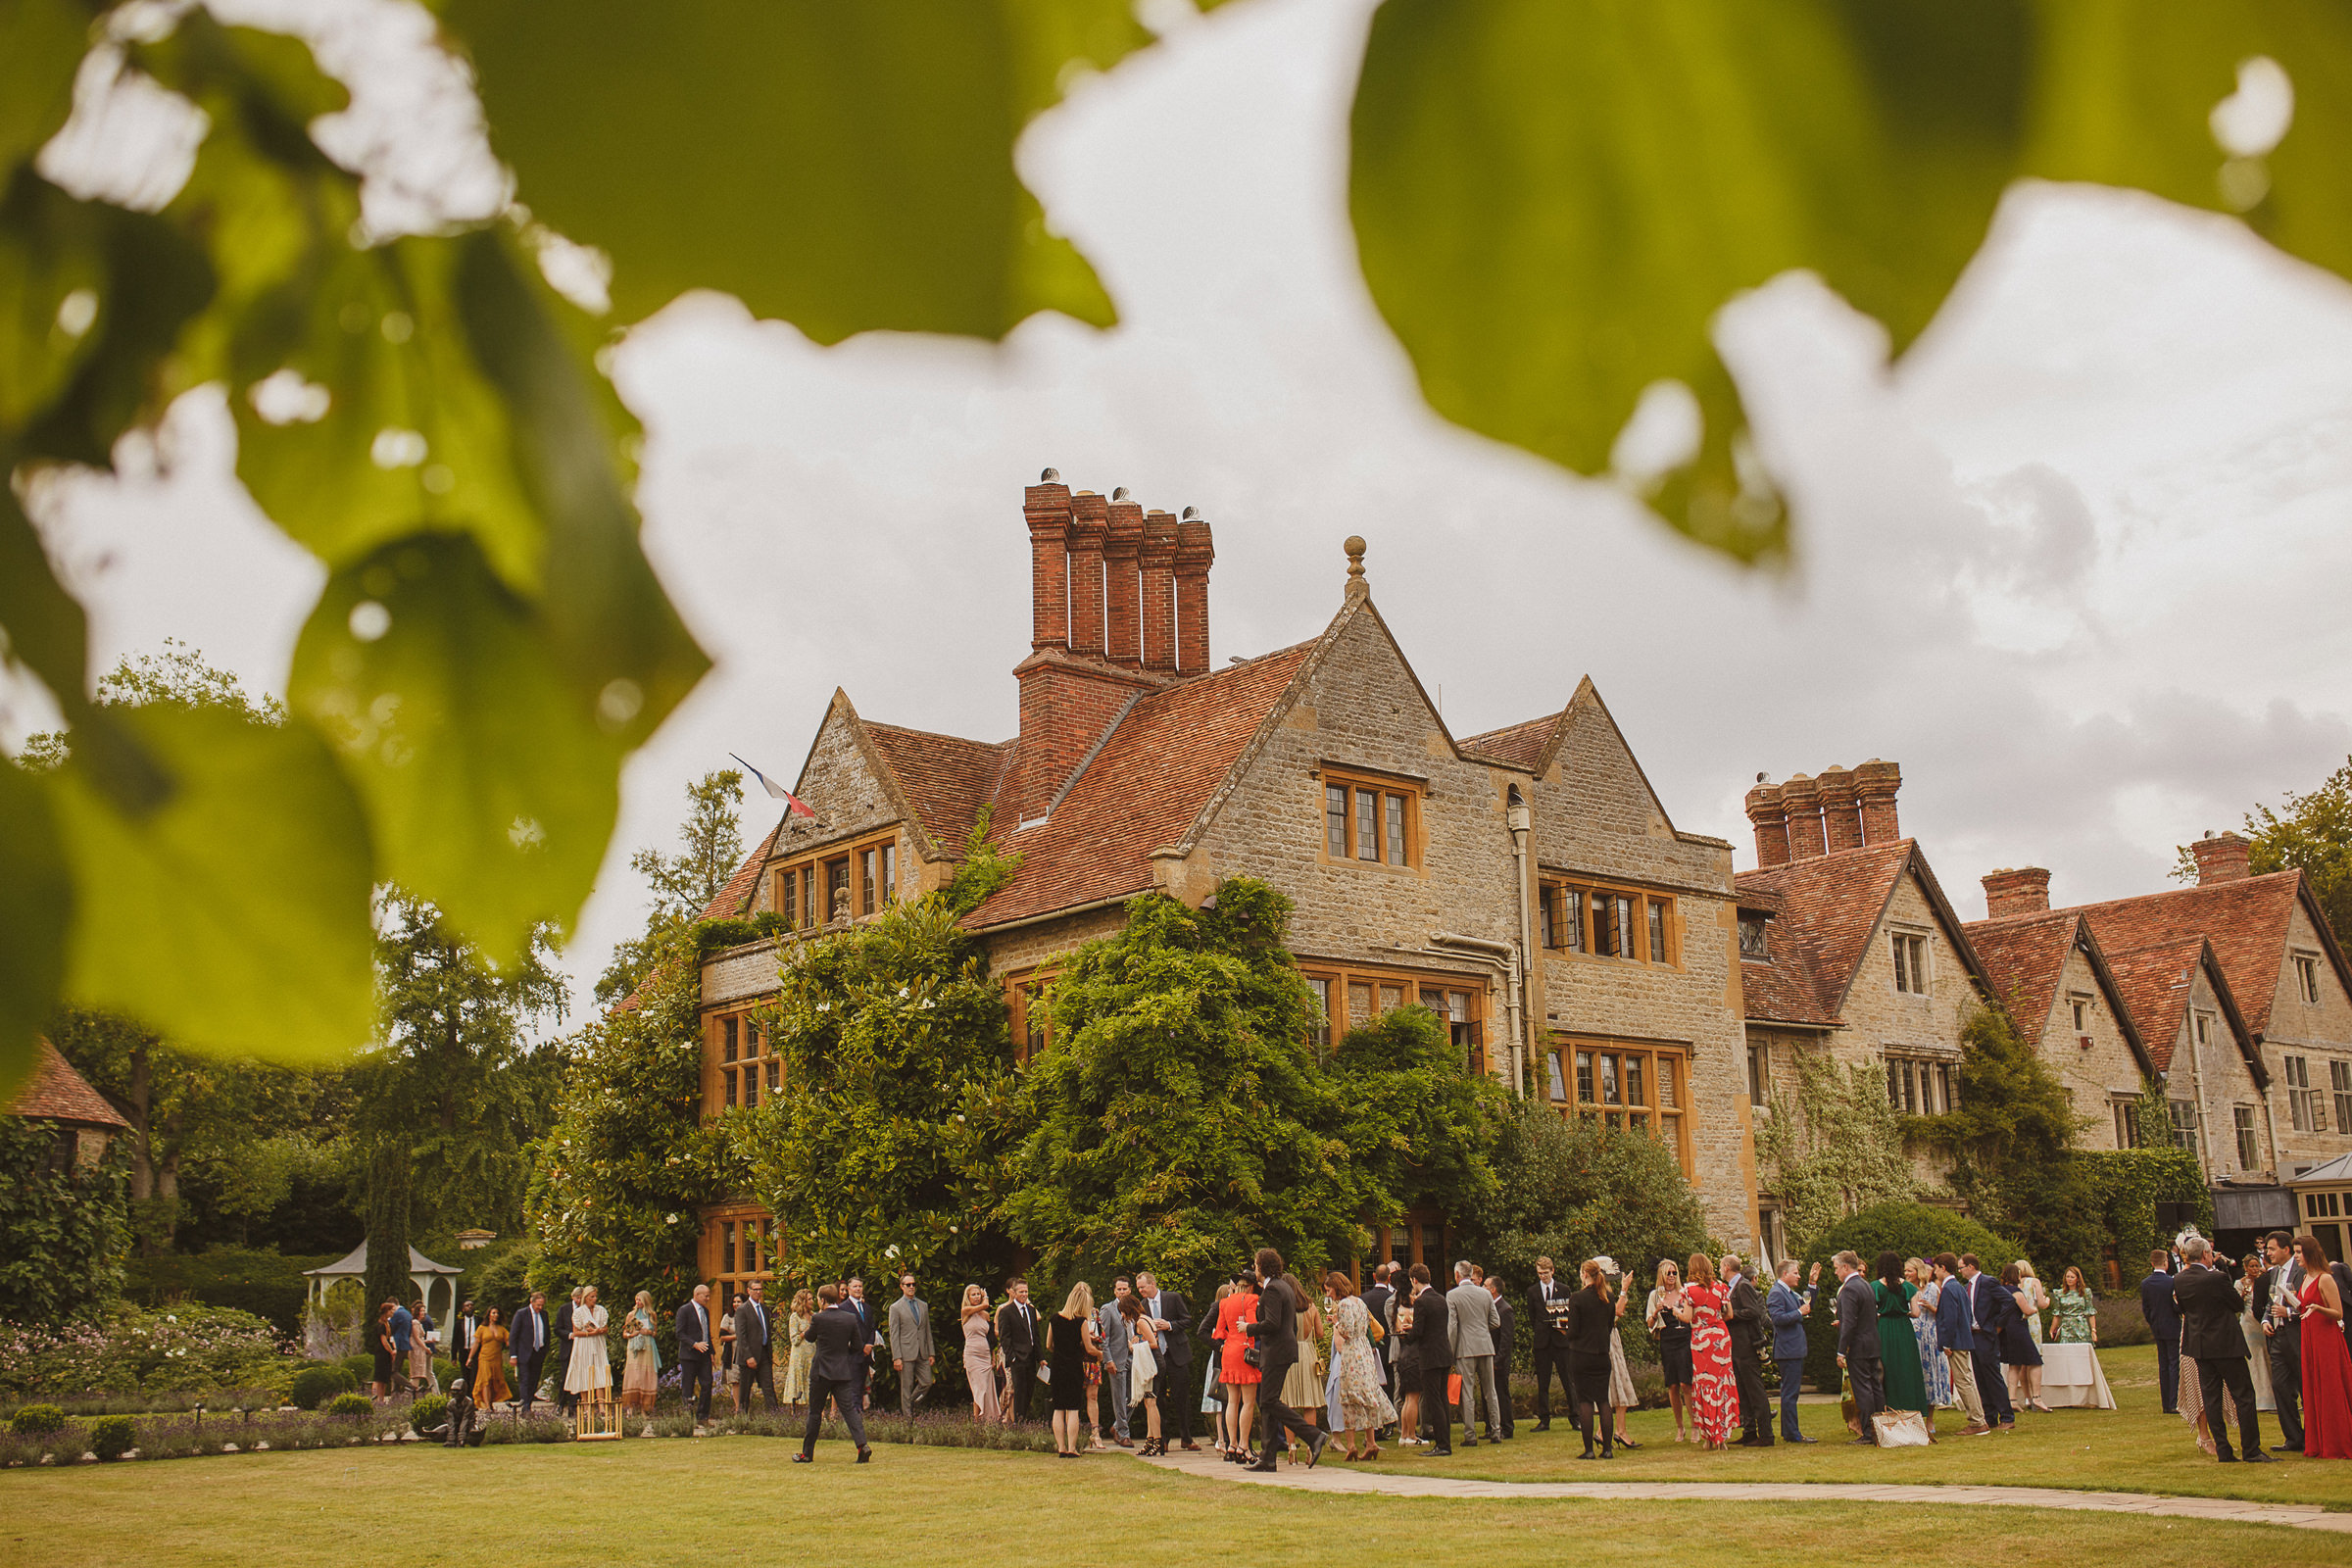 Guests gathered outside belmond le manoir aux quatsaisons - photo by Ed Peers Photography